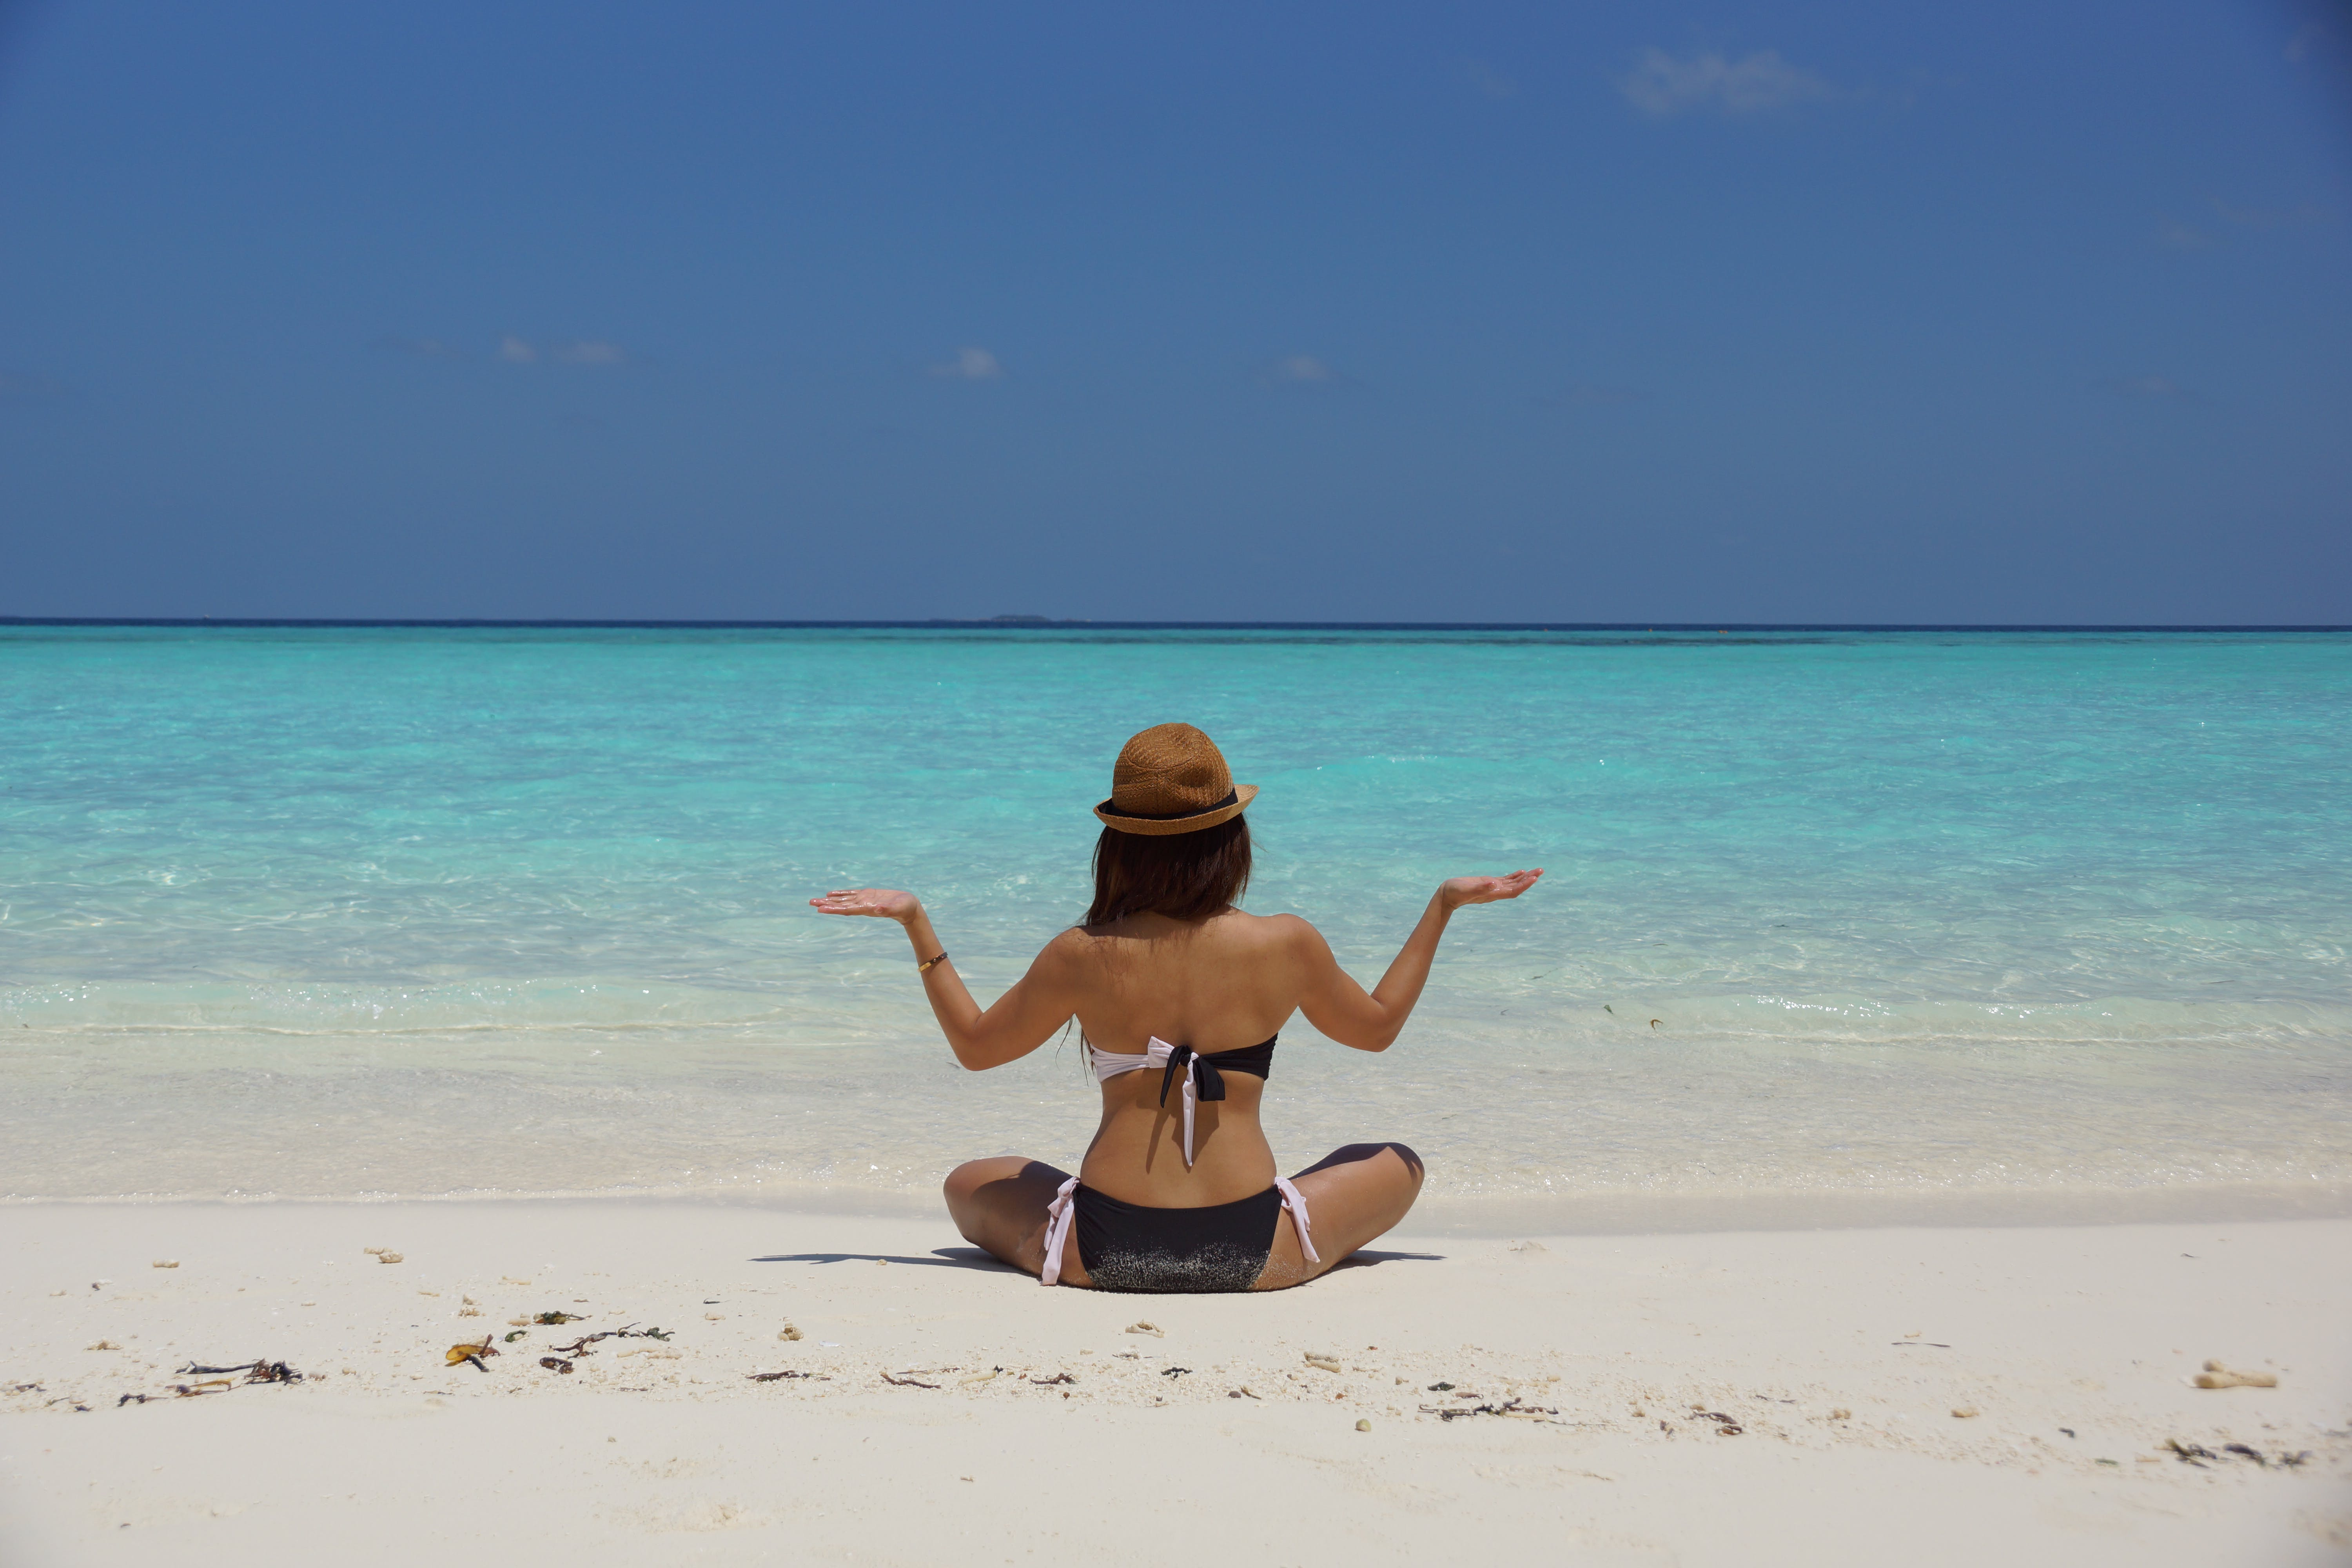 Woman in Black and White Bikini Sitting on White Stand Facing Beach during Daytime